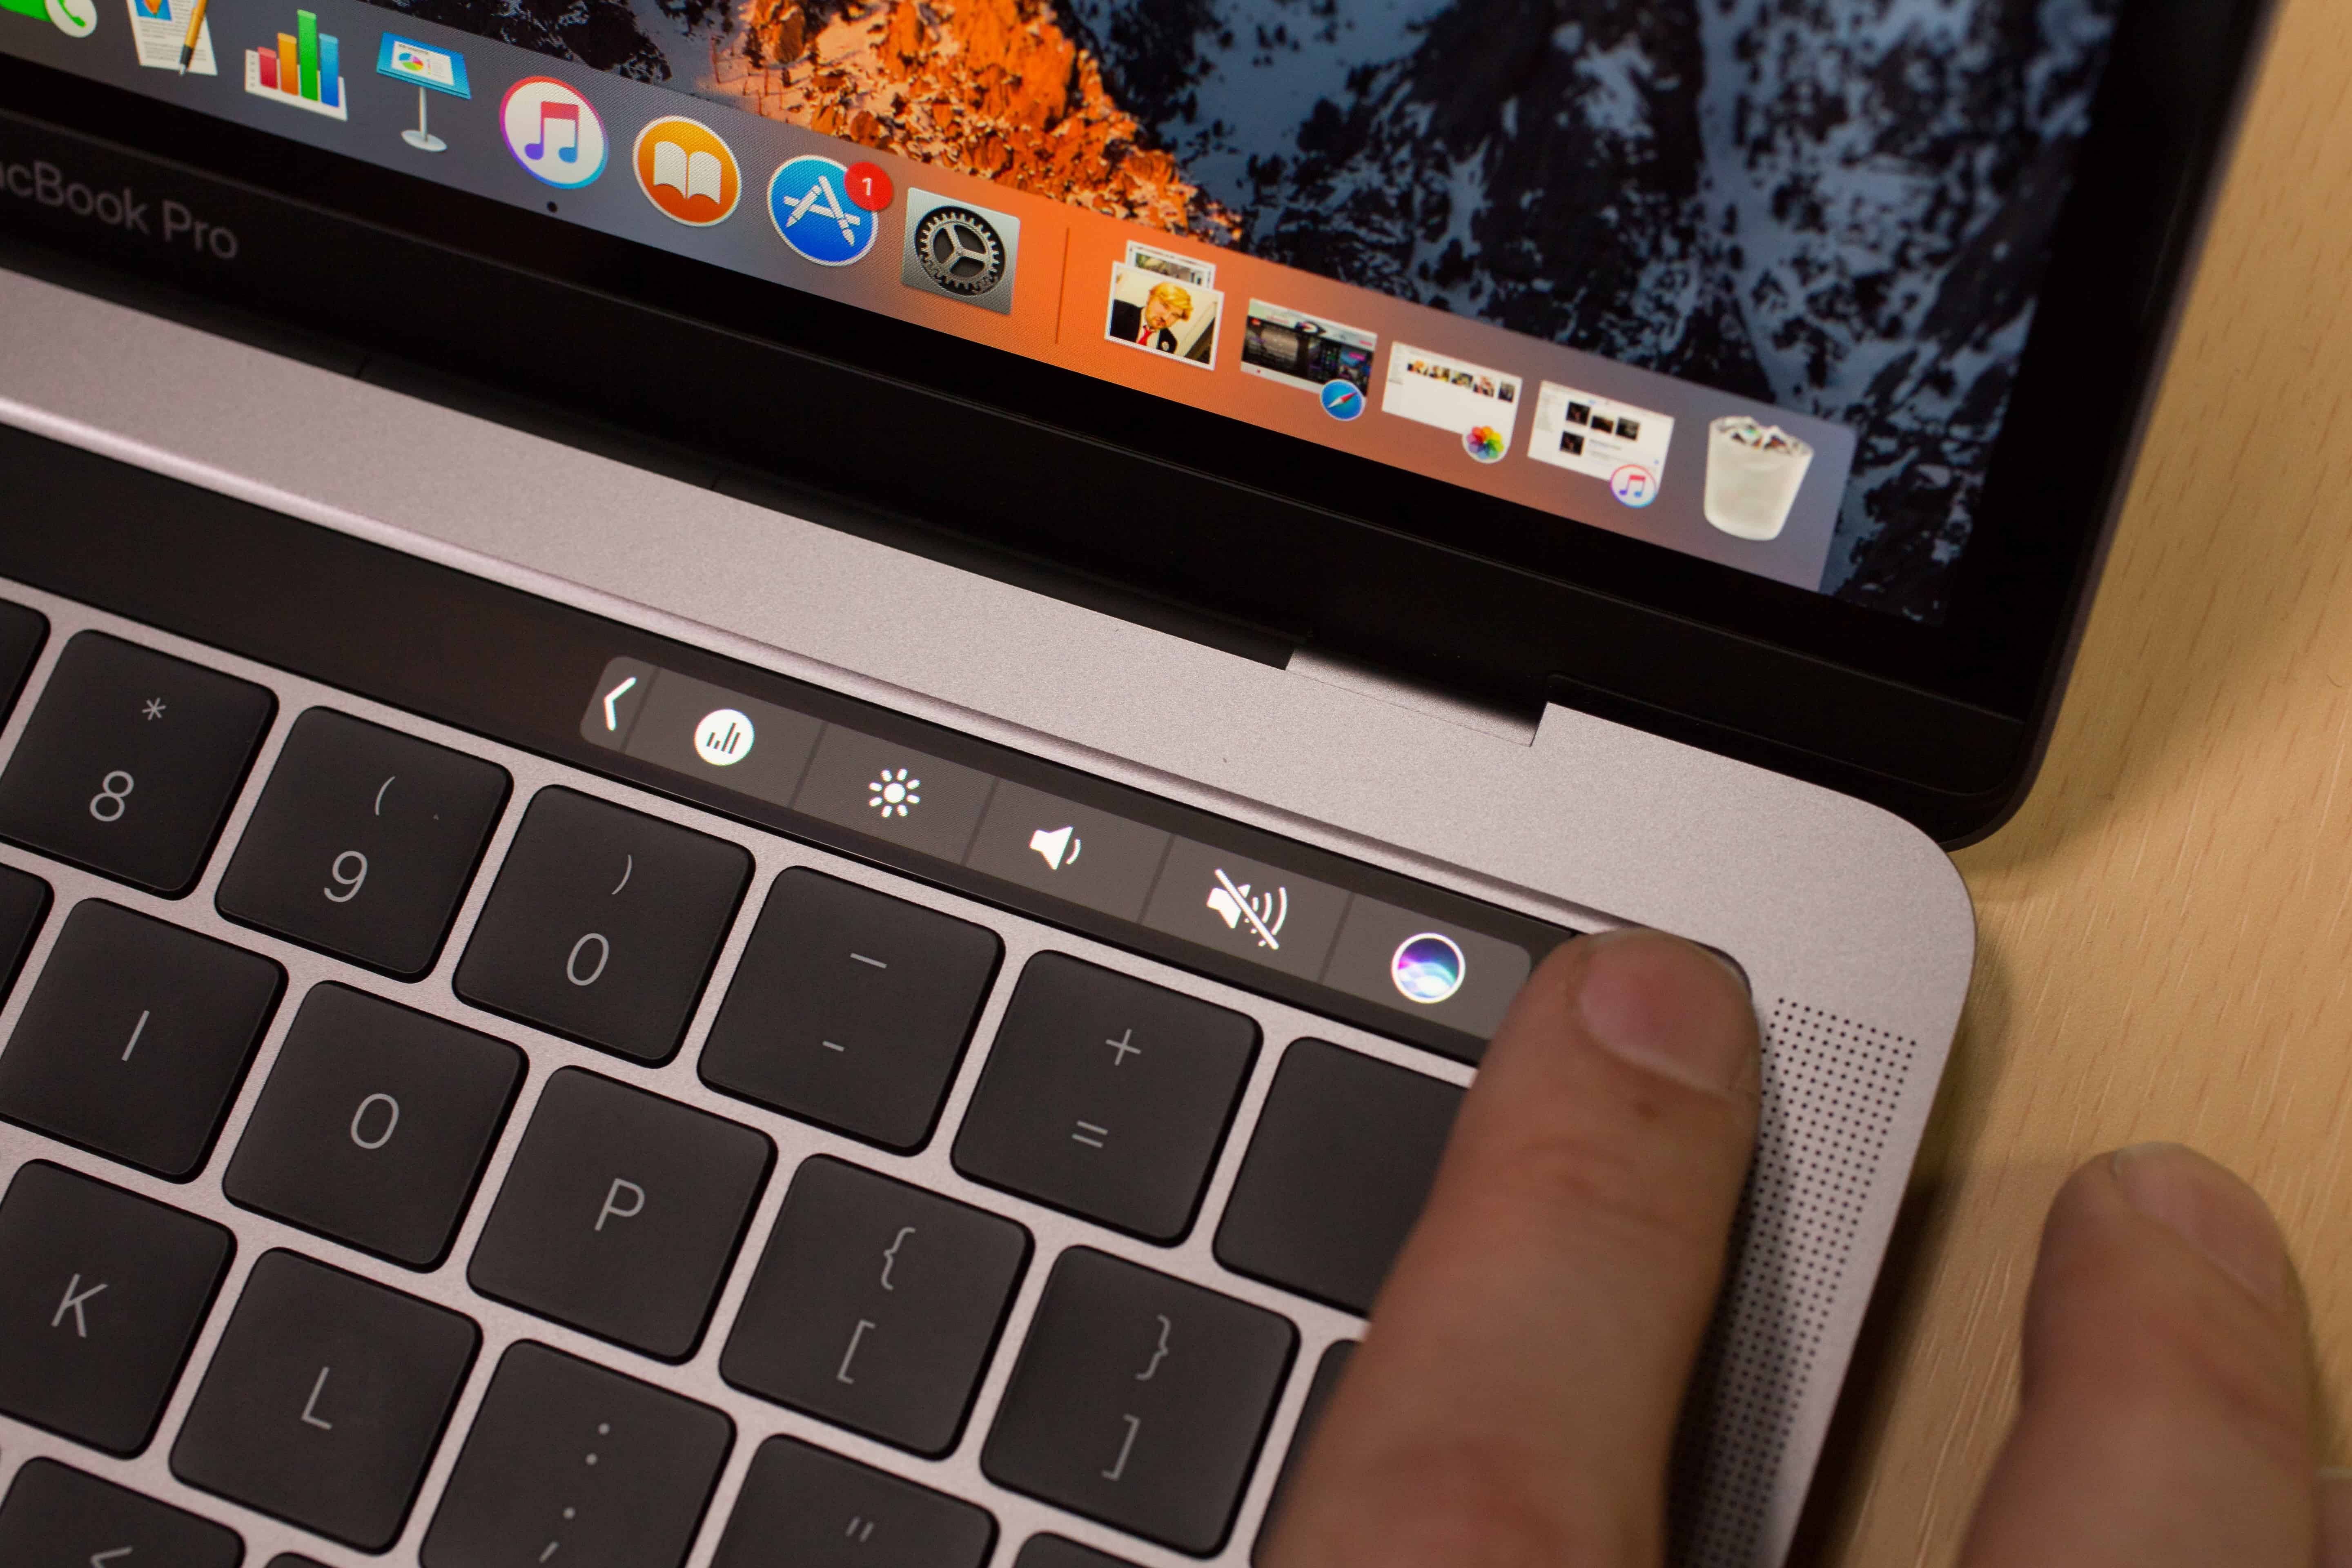 Apple to end Touch Bar on MacBook Pro, reports Gurman